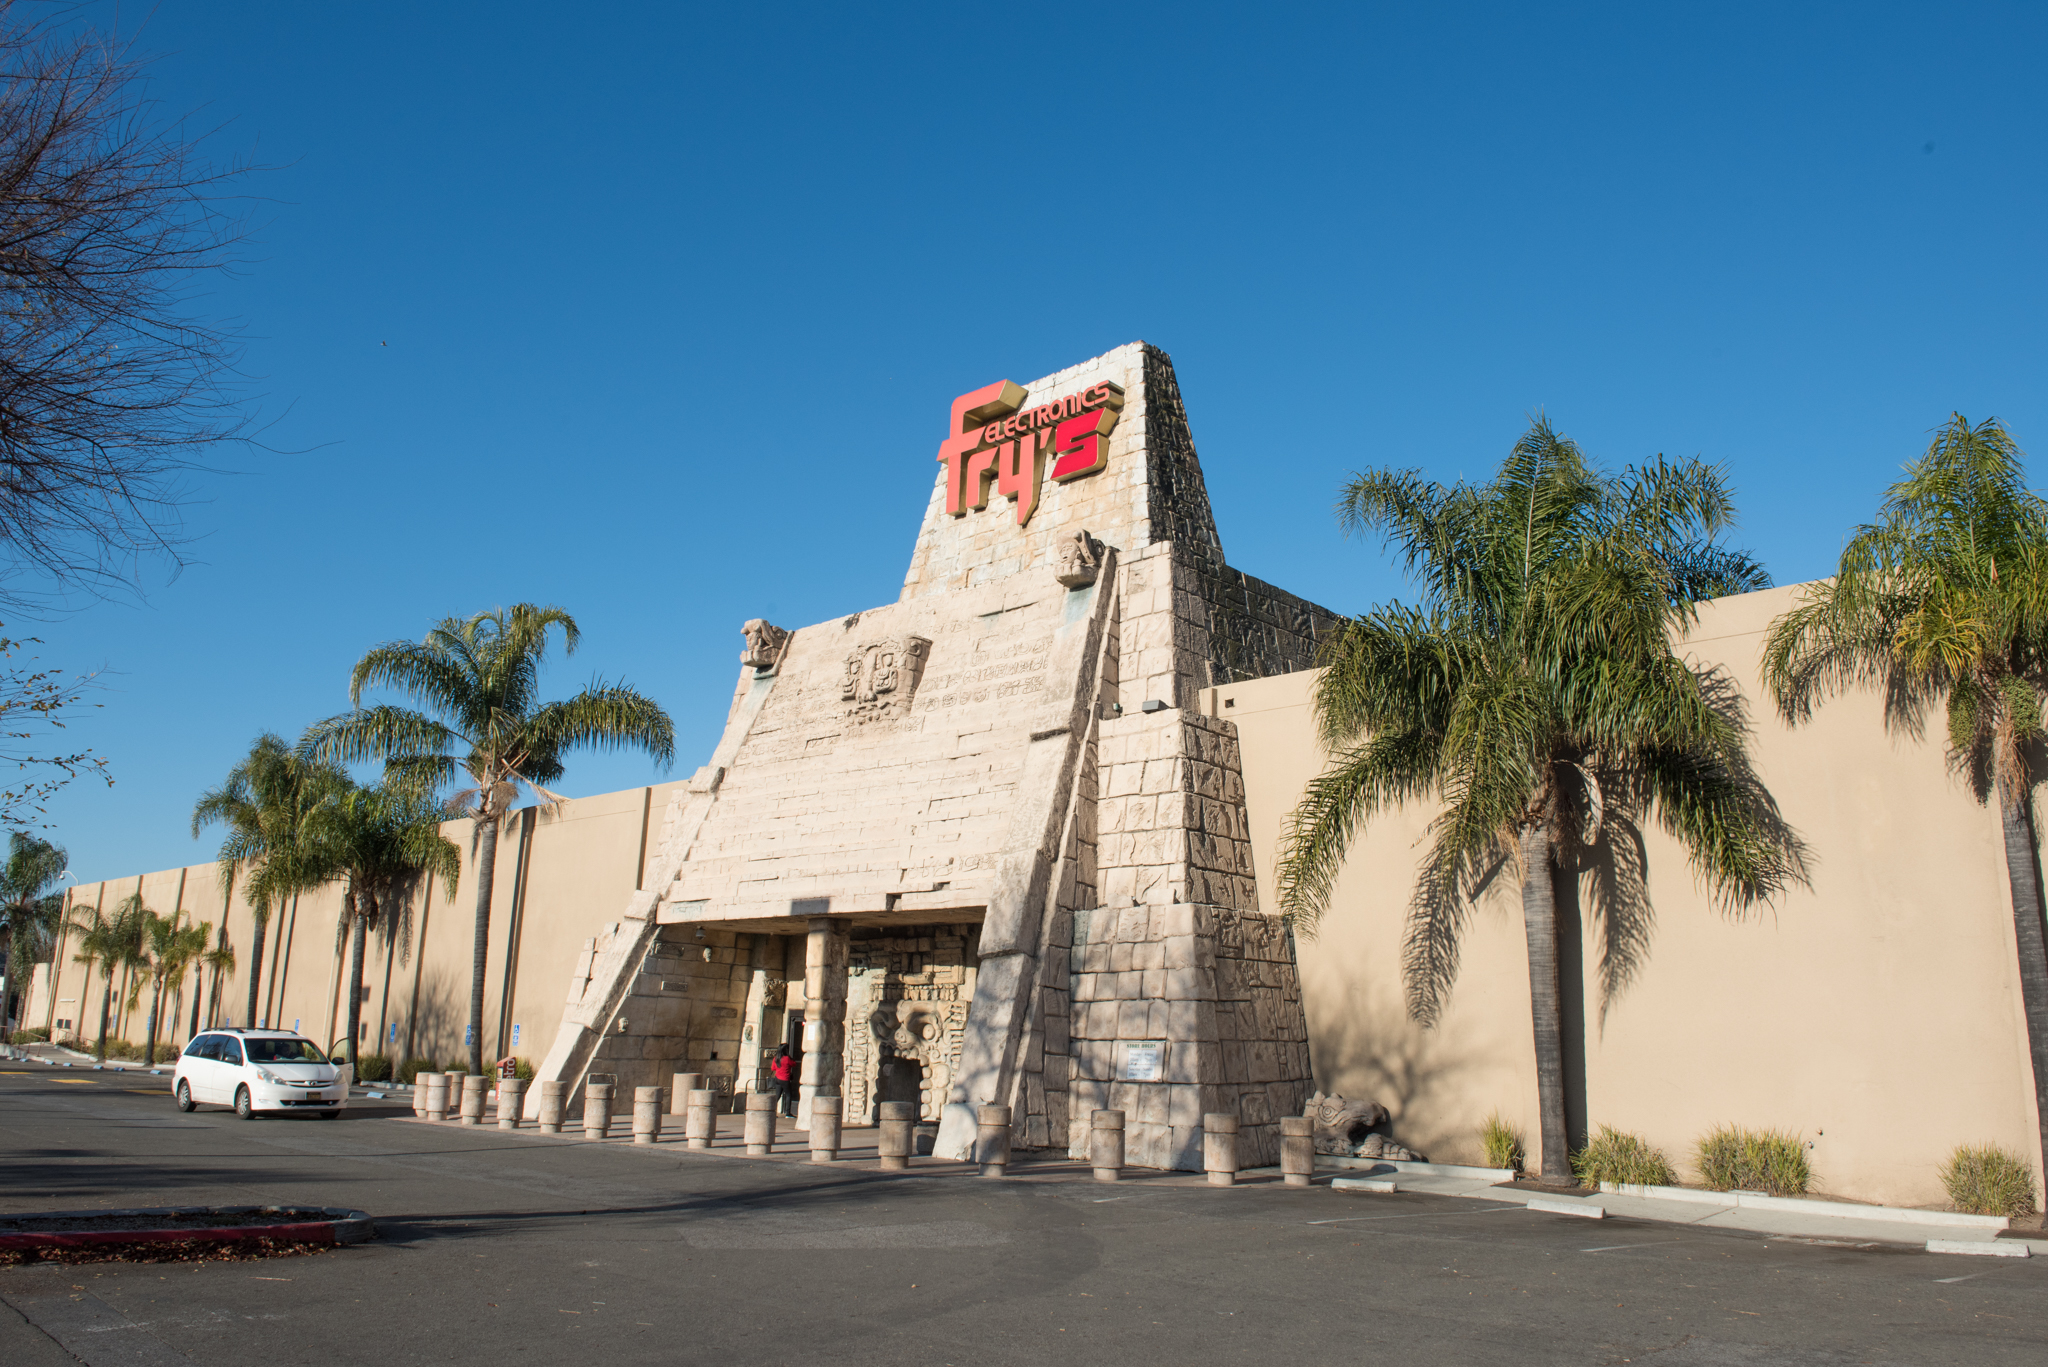 The kitschy history of the Bay Area's themed Fry's Electronics